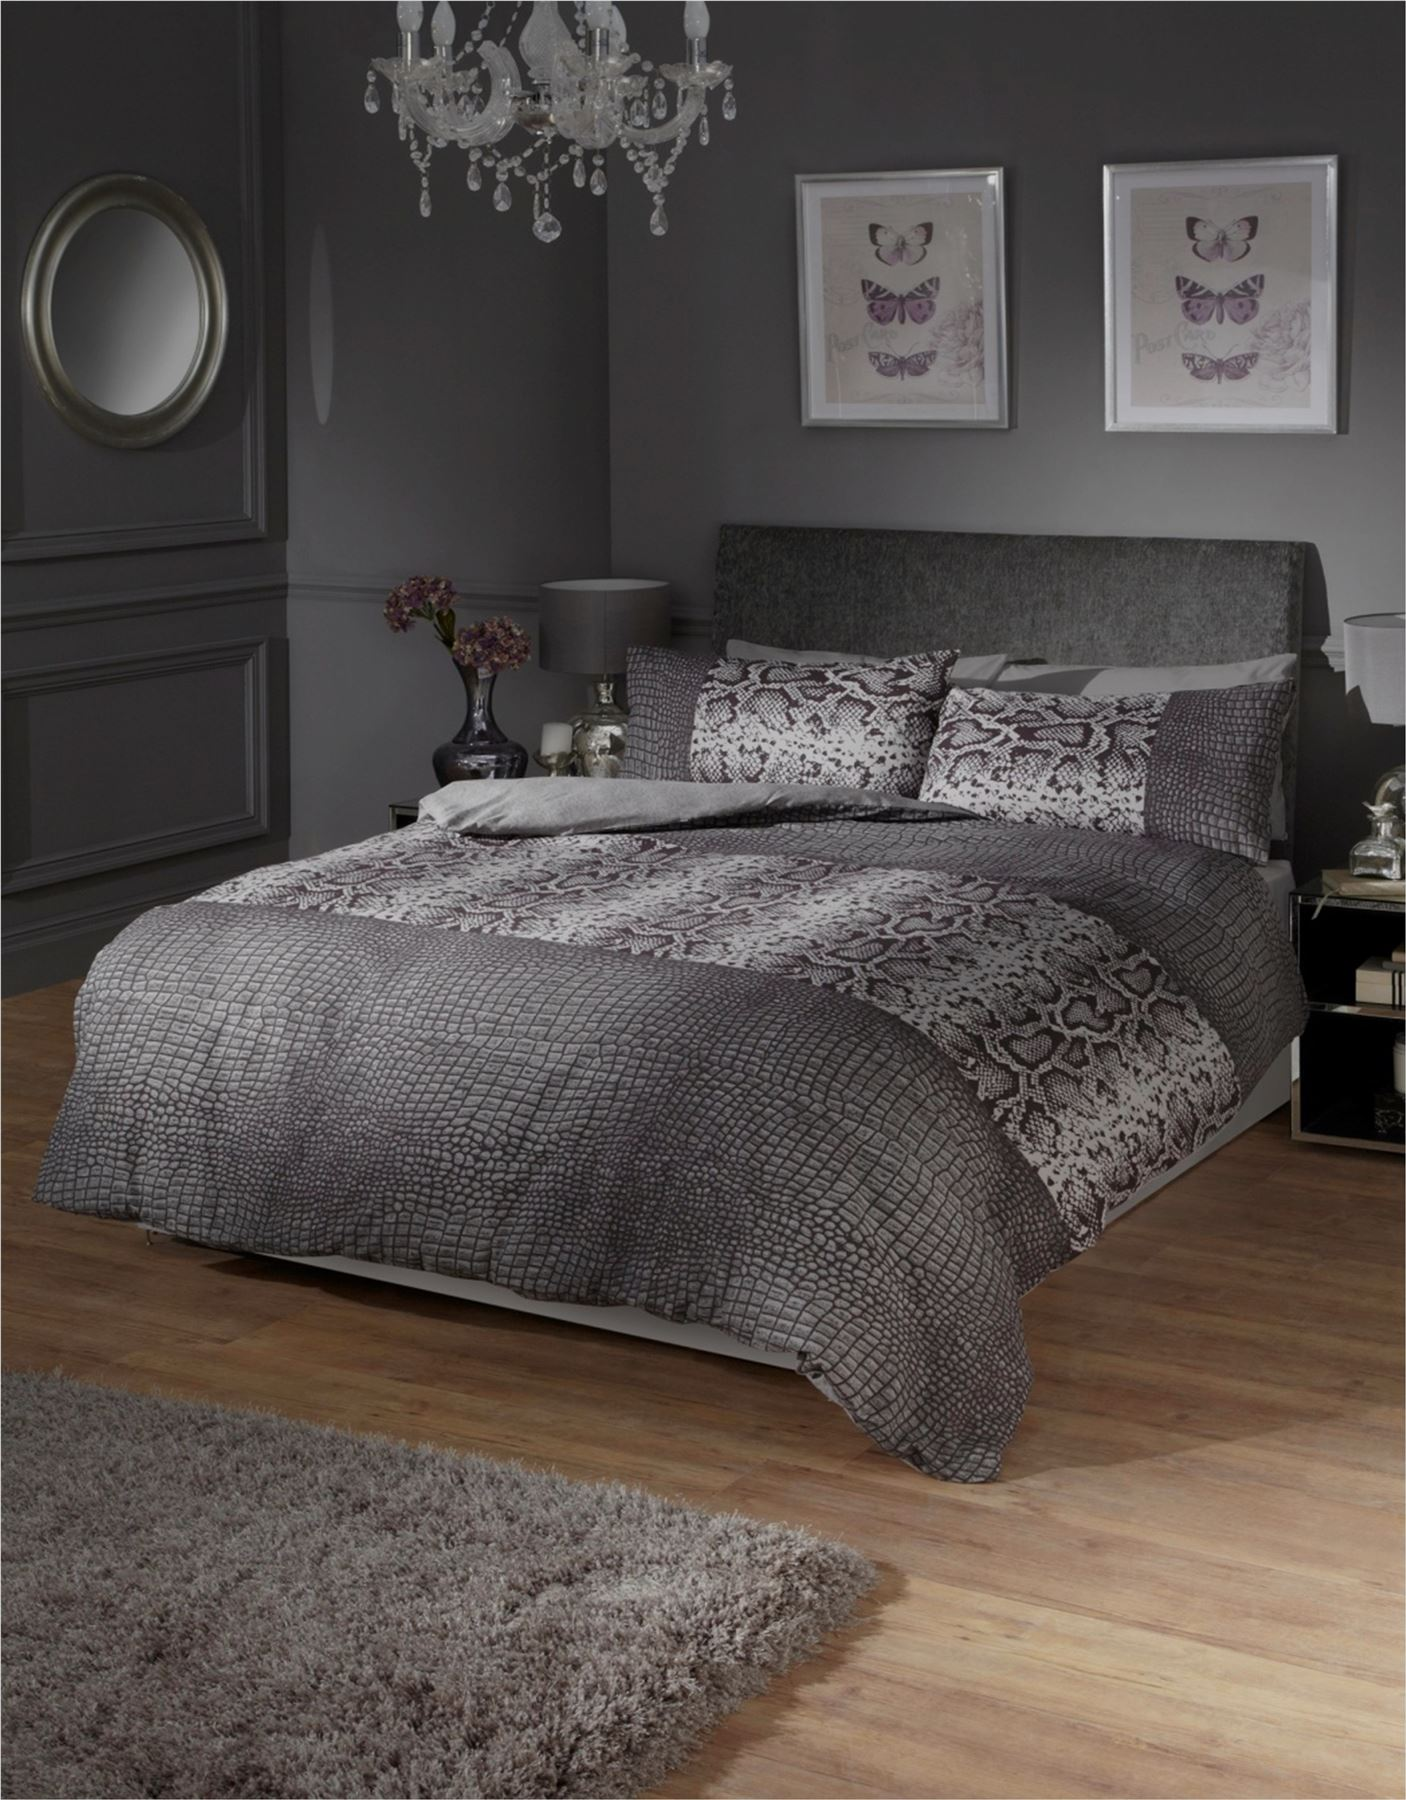 Black White And Grey Duvet Covers Black And Grey Snake Skin Style Quilt Duvet Cover